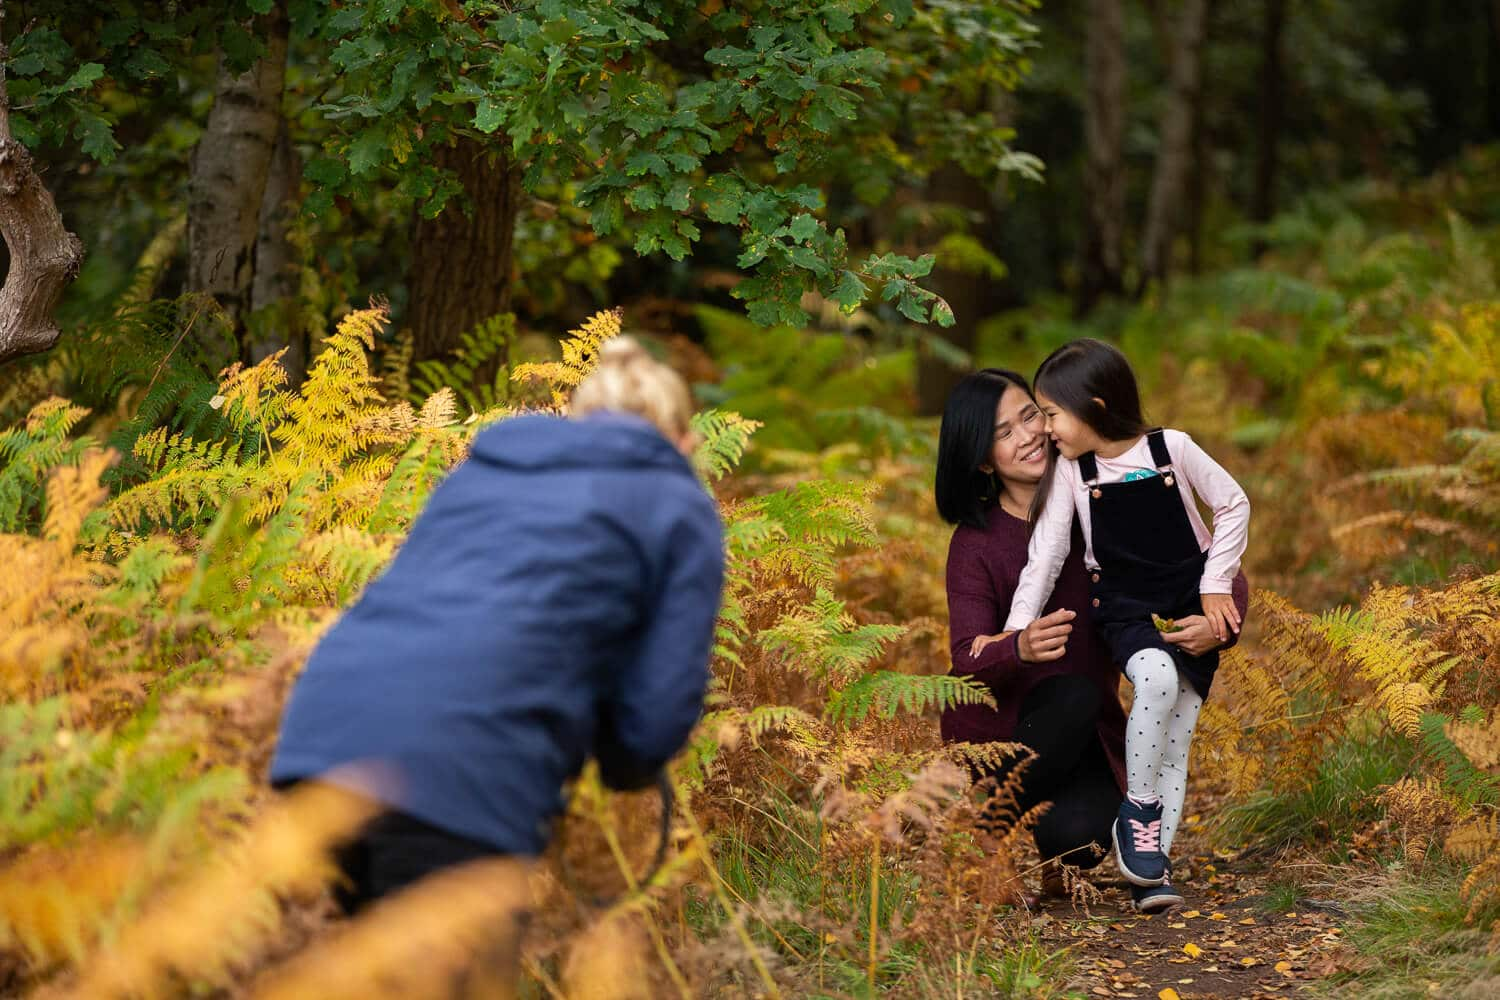 Family photography in the Autumn